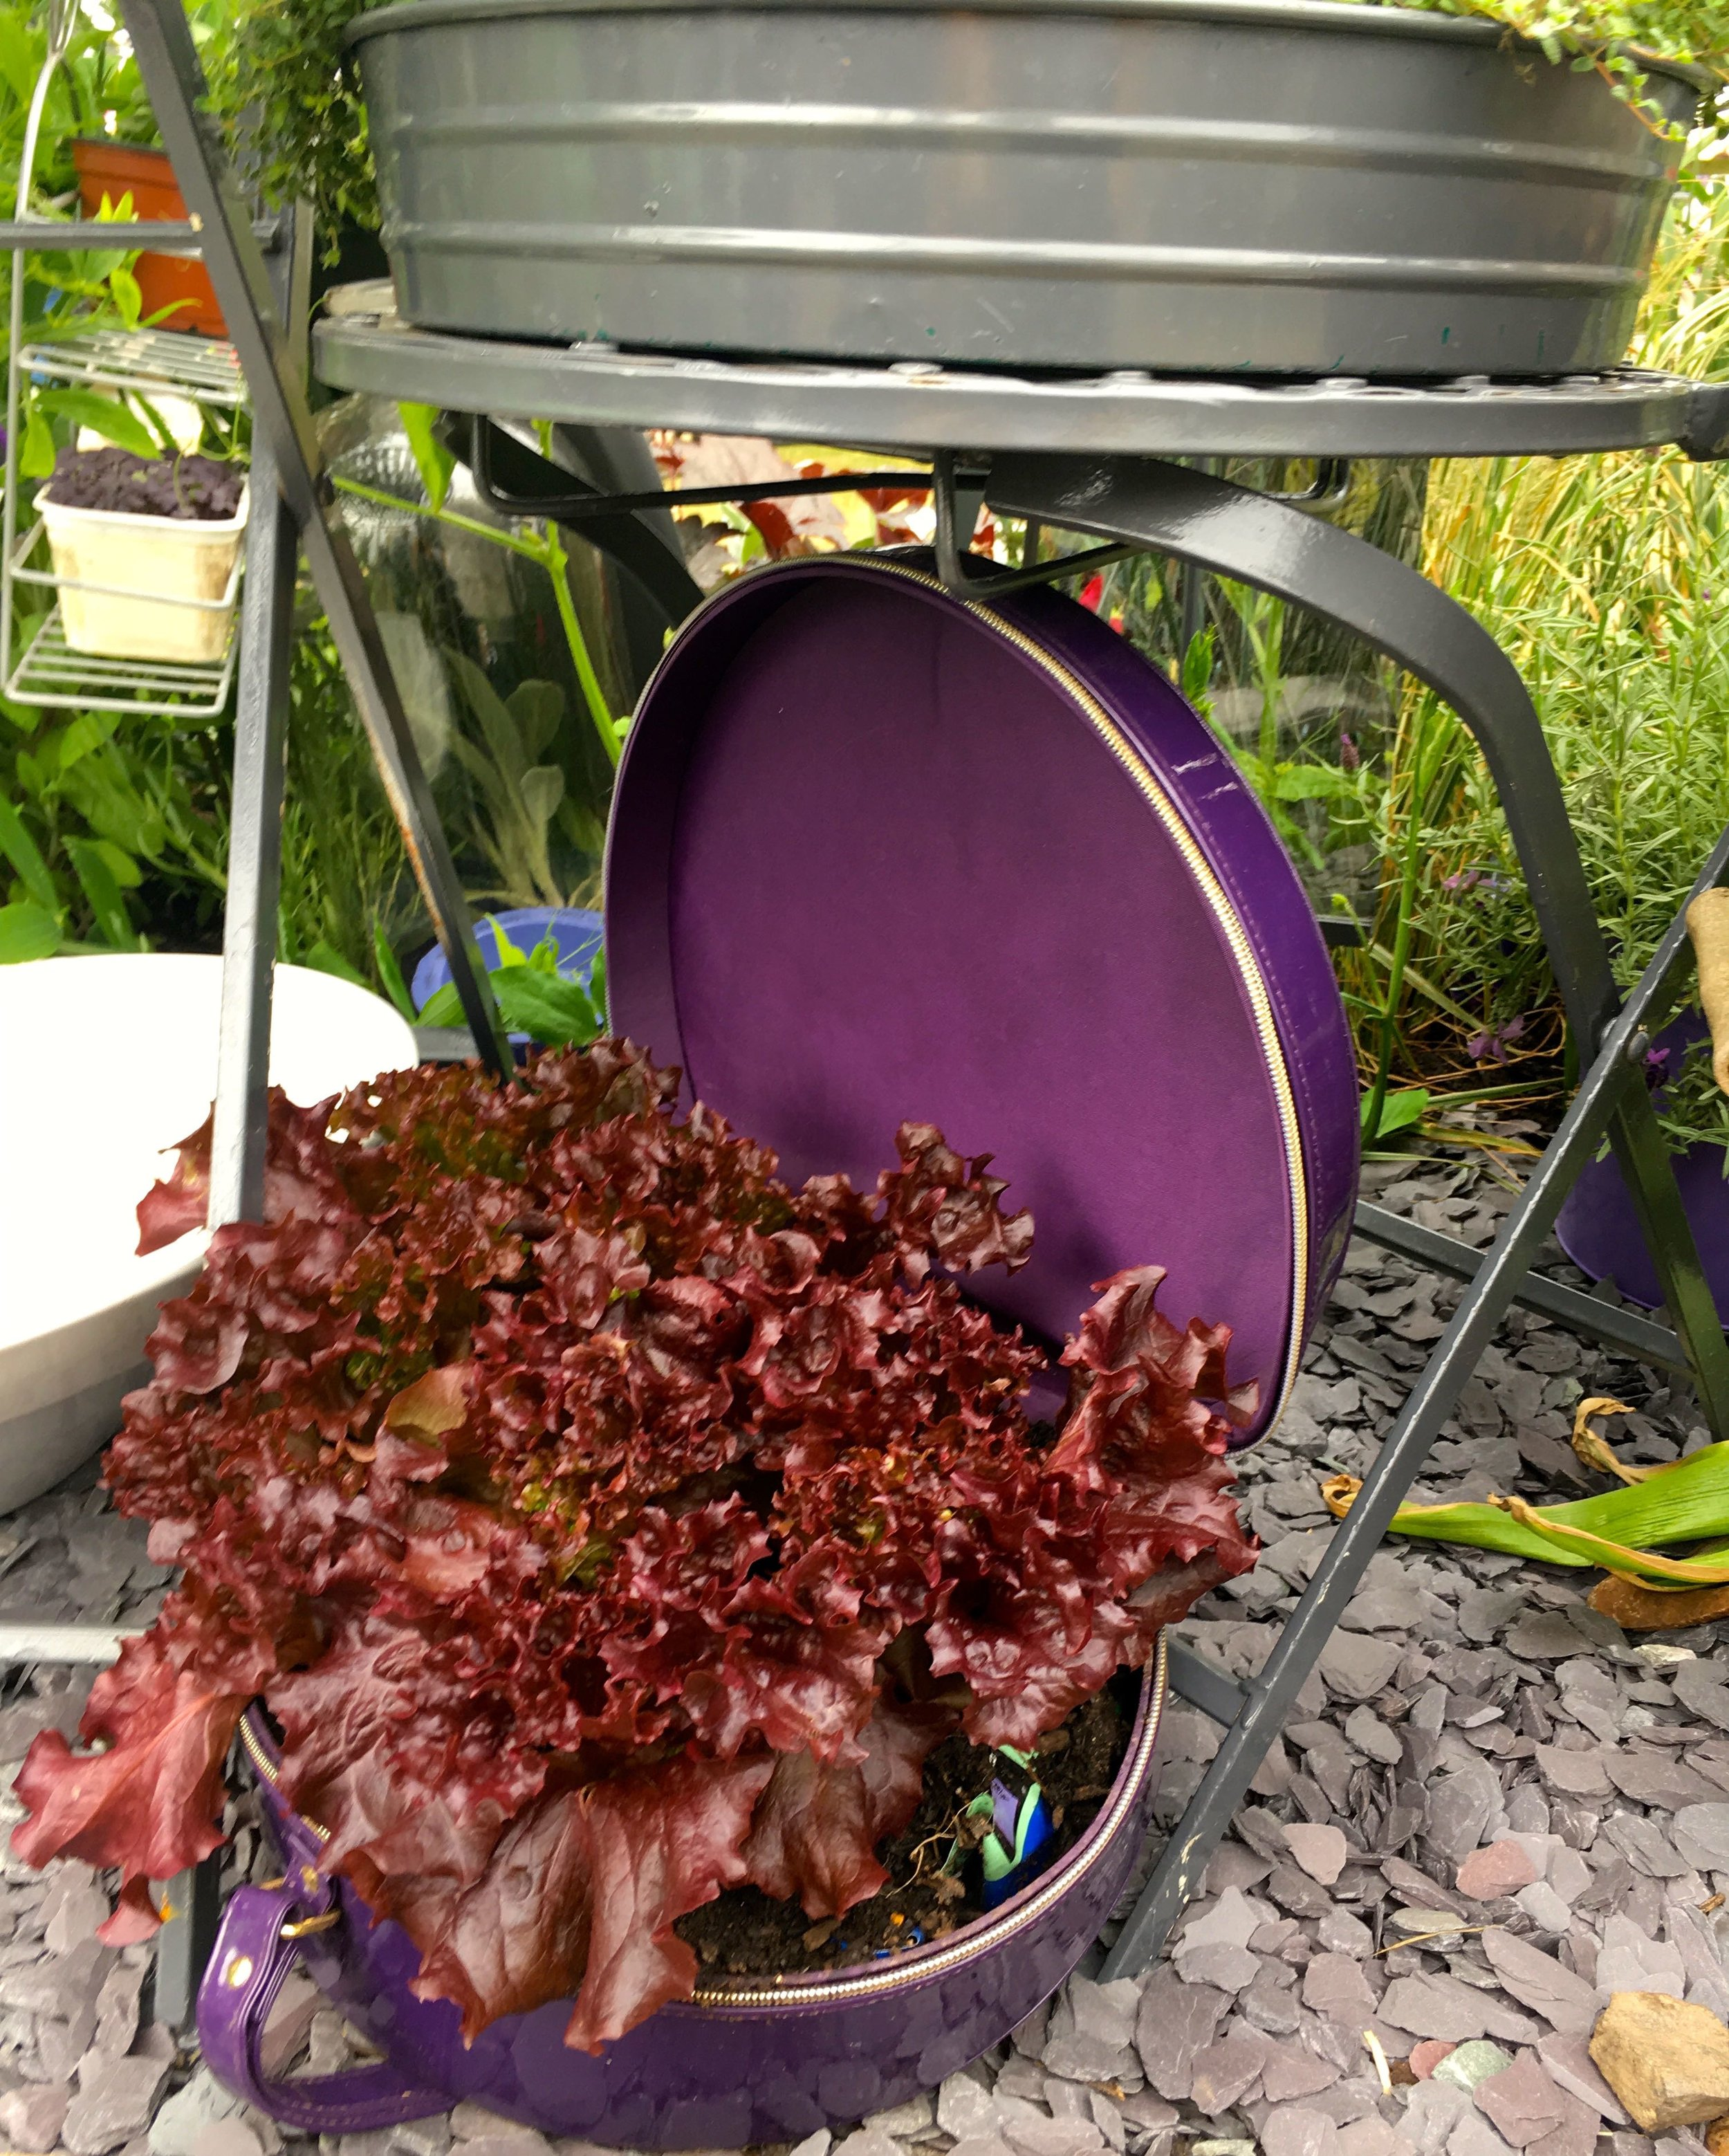 A case for the purple lettuce